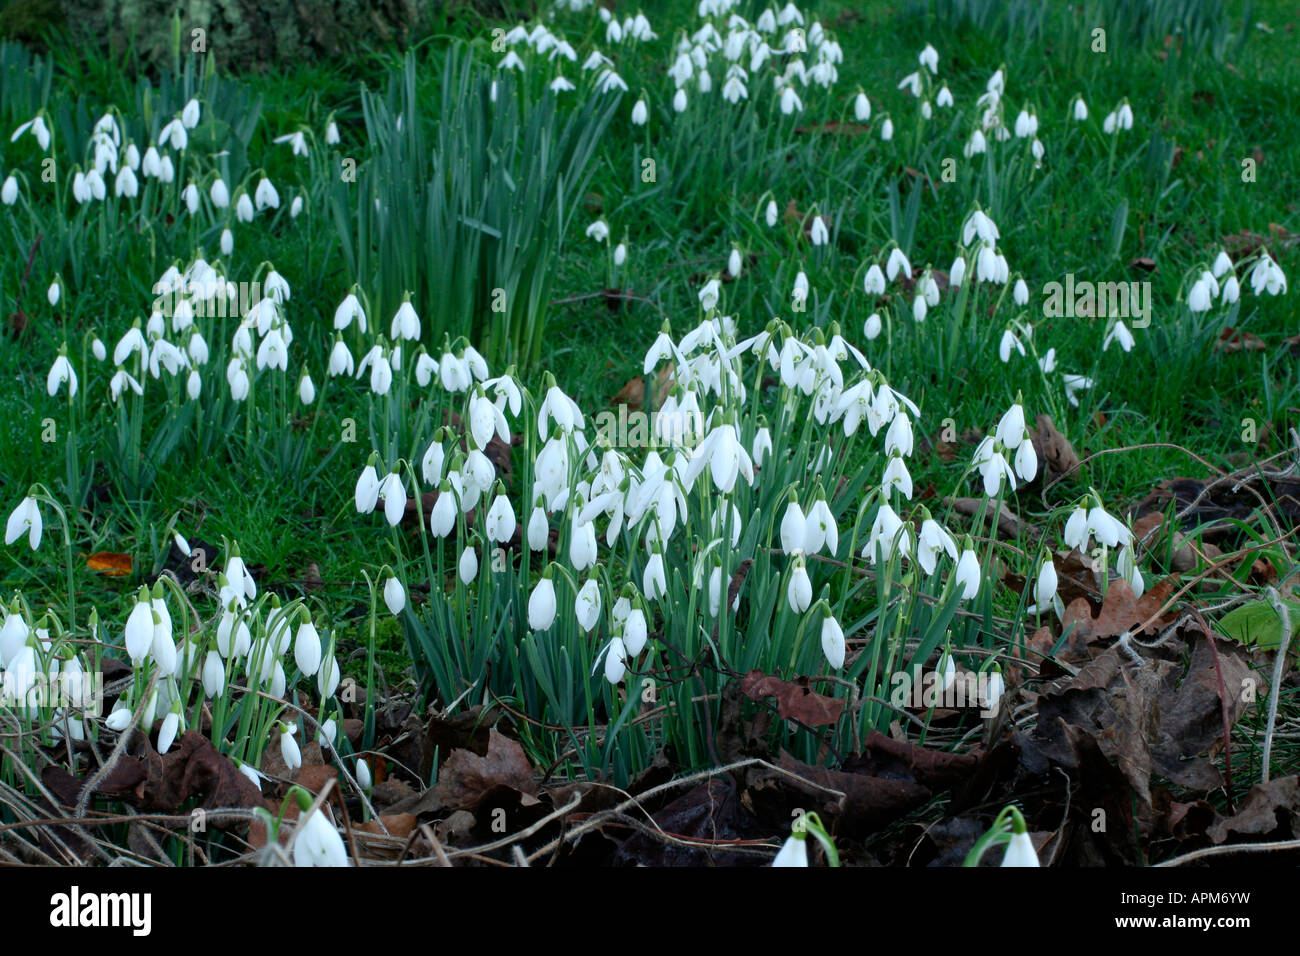 Snowdrops in a south Somerset garden late January - Stock Image